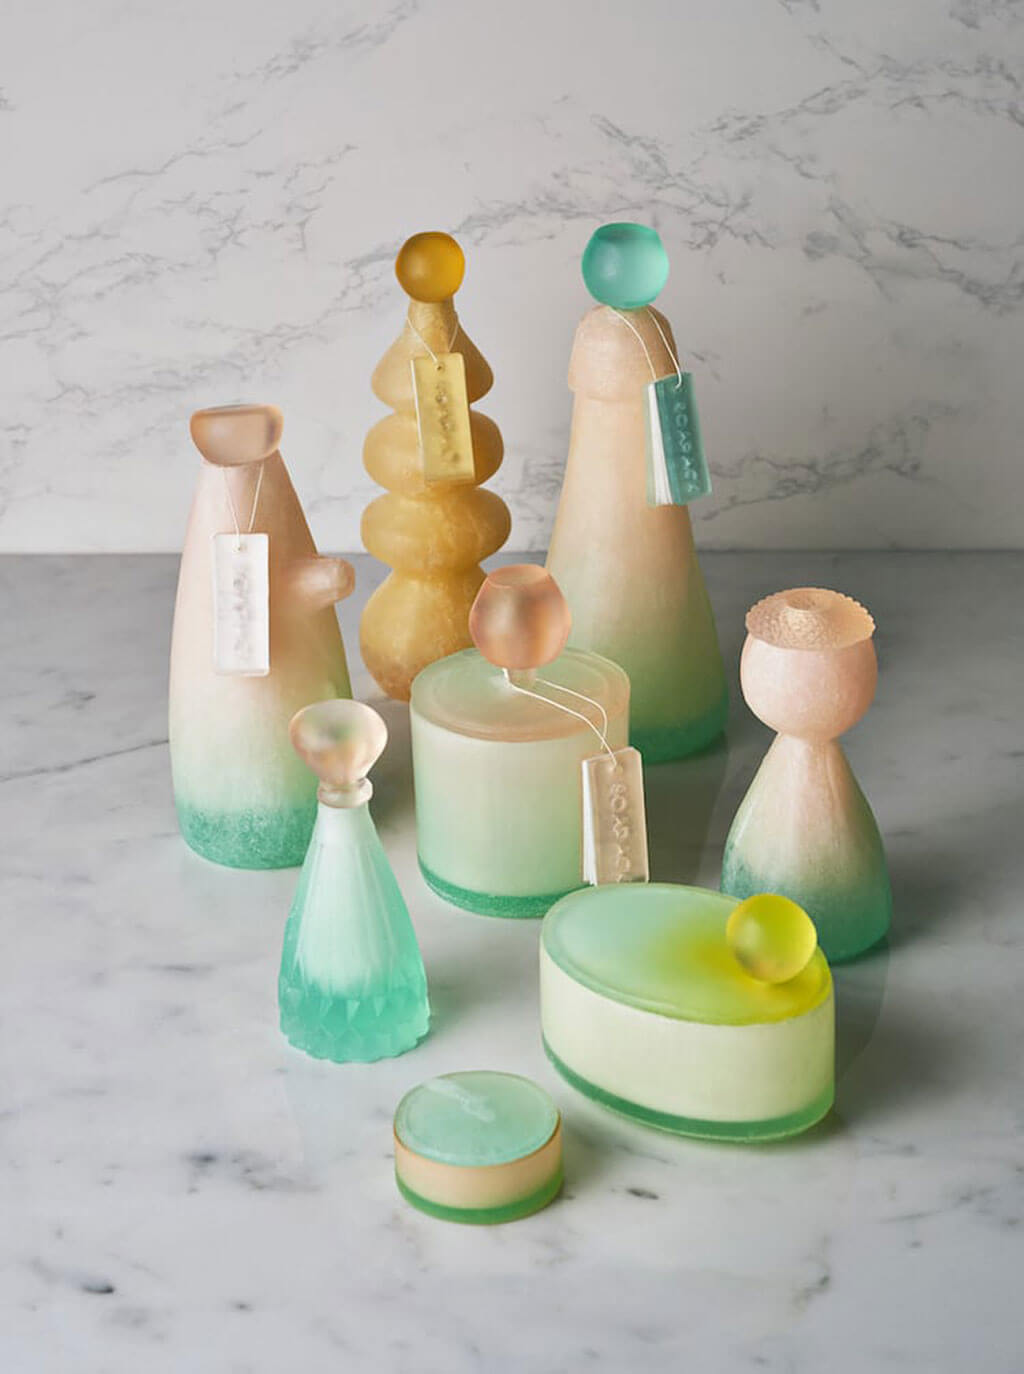 Mi Zhou's Soapack collection